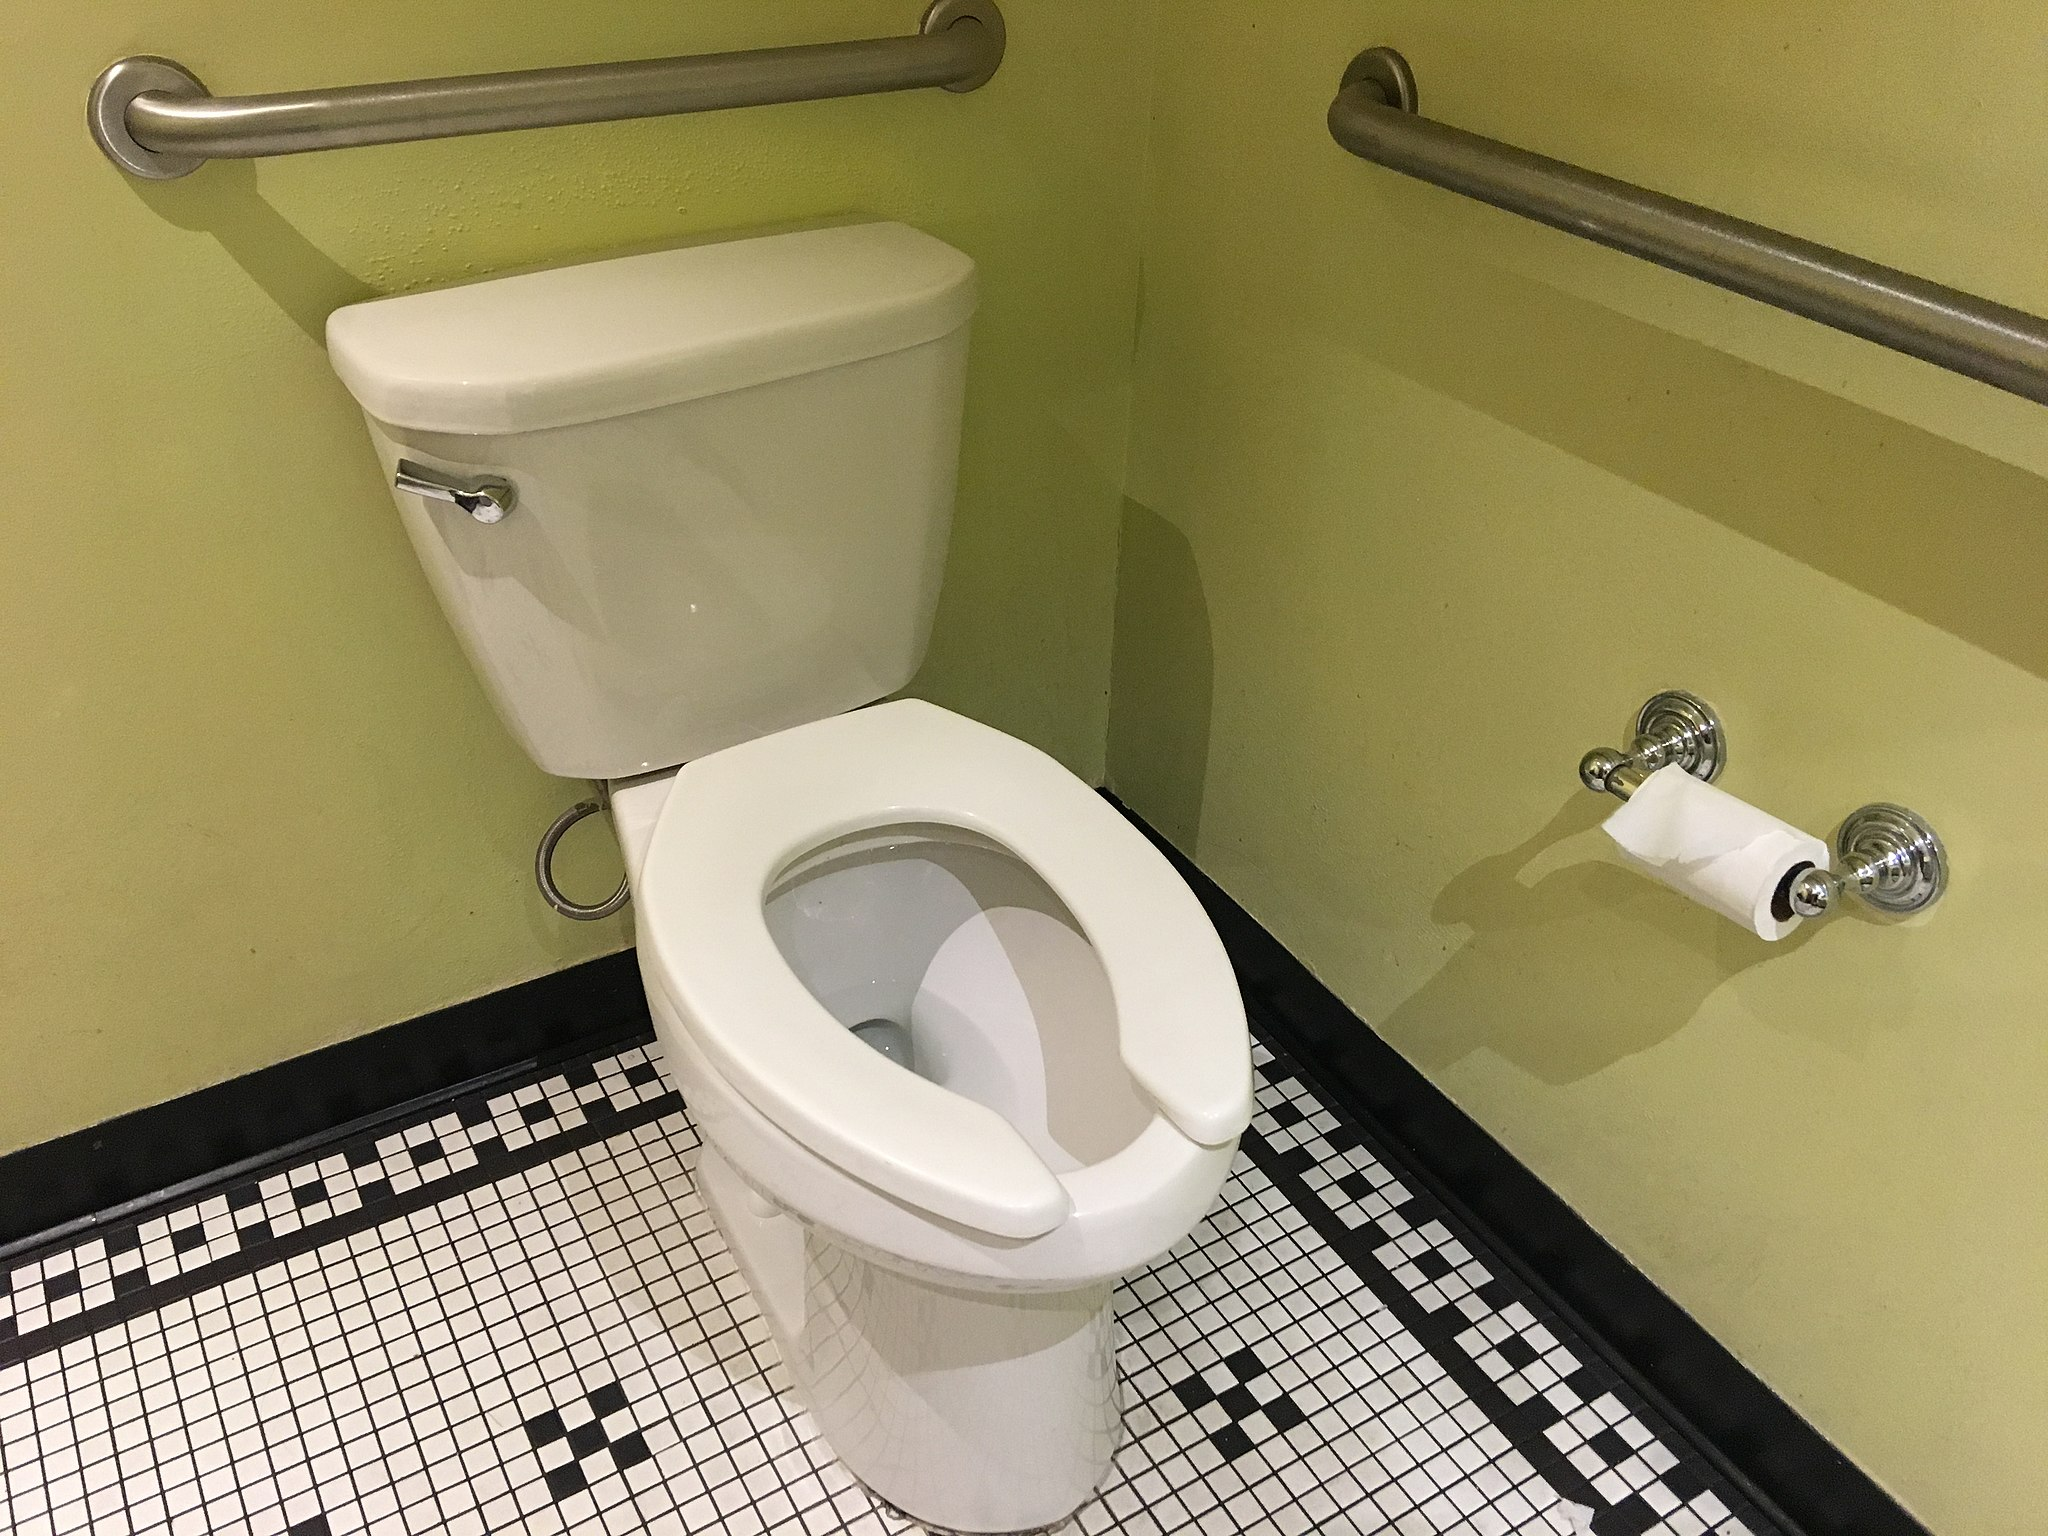 A toilet in a bathroom with black and white floor tiles and green walls